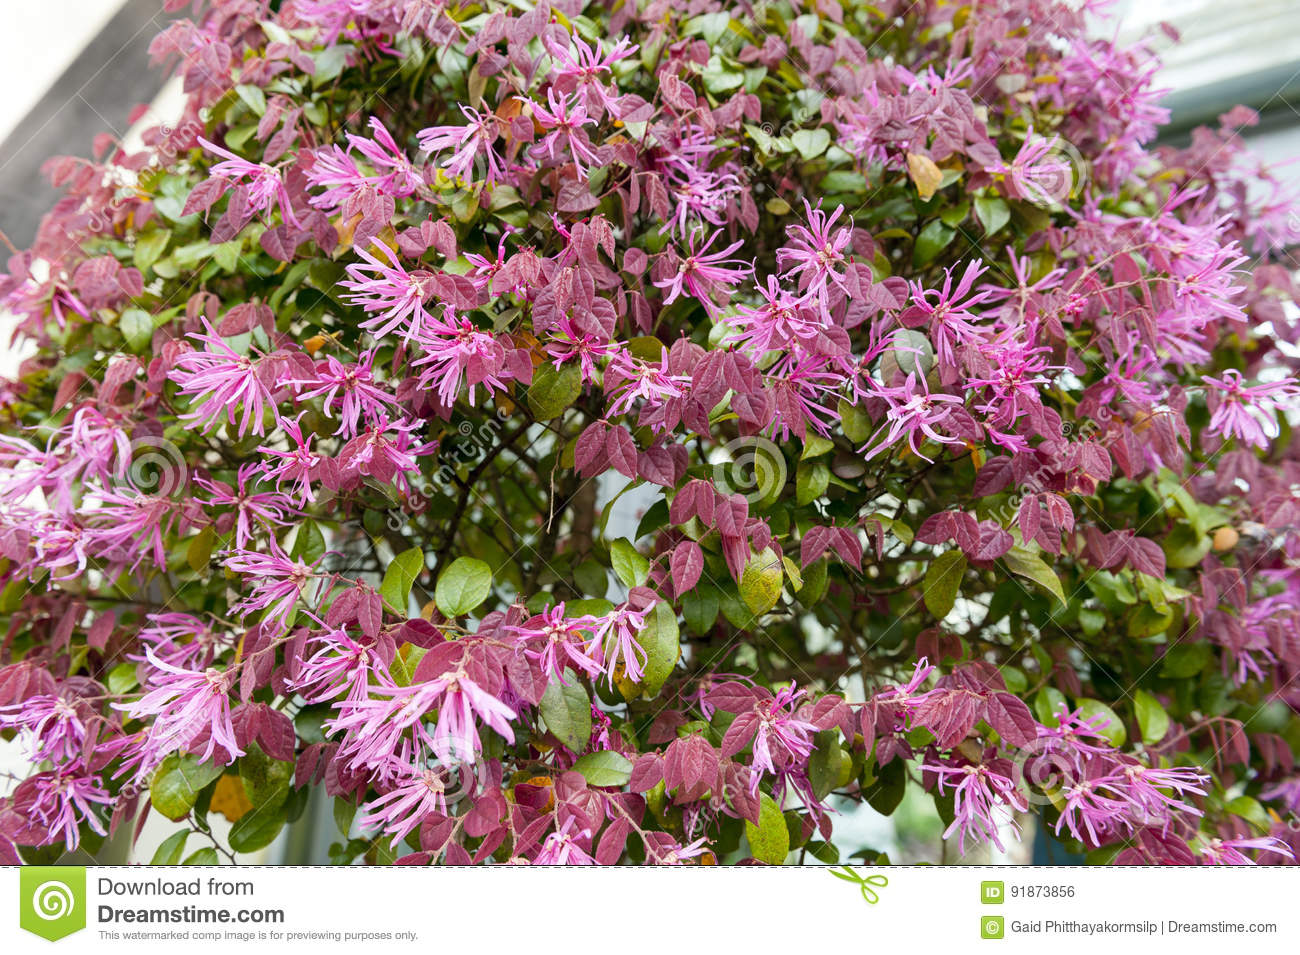 Red leaves and pink flowers of loropetalum chinese fringe shrub download red leaves and pink flowers of loropetalum chinese fringe shrub plant during blossom season stock mightylinksfo